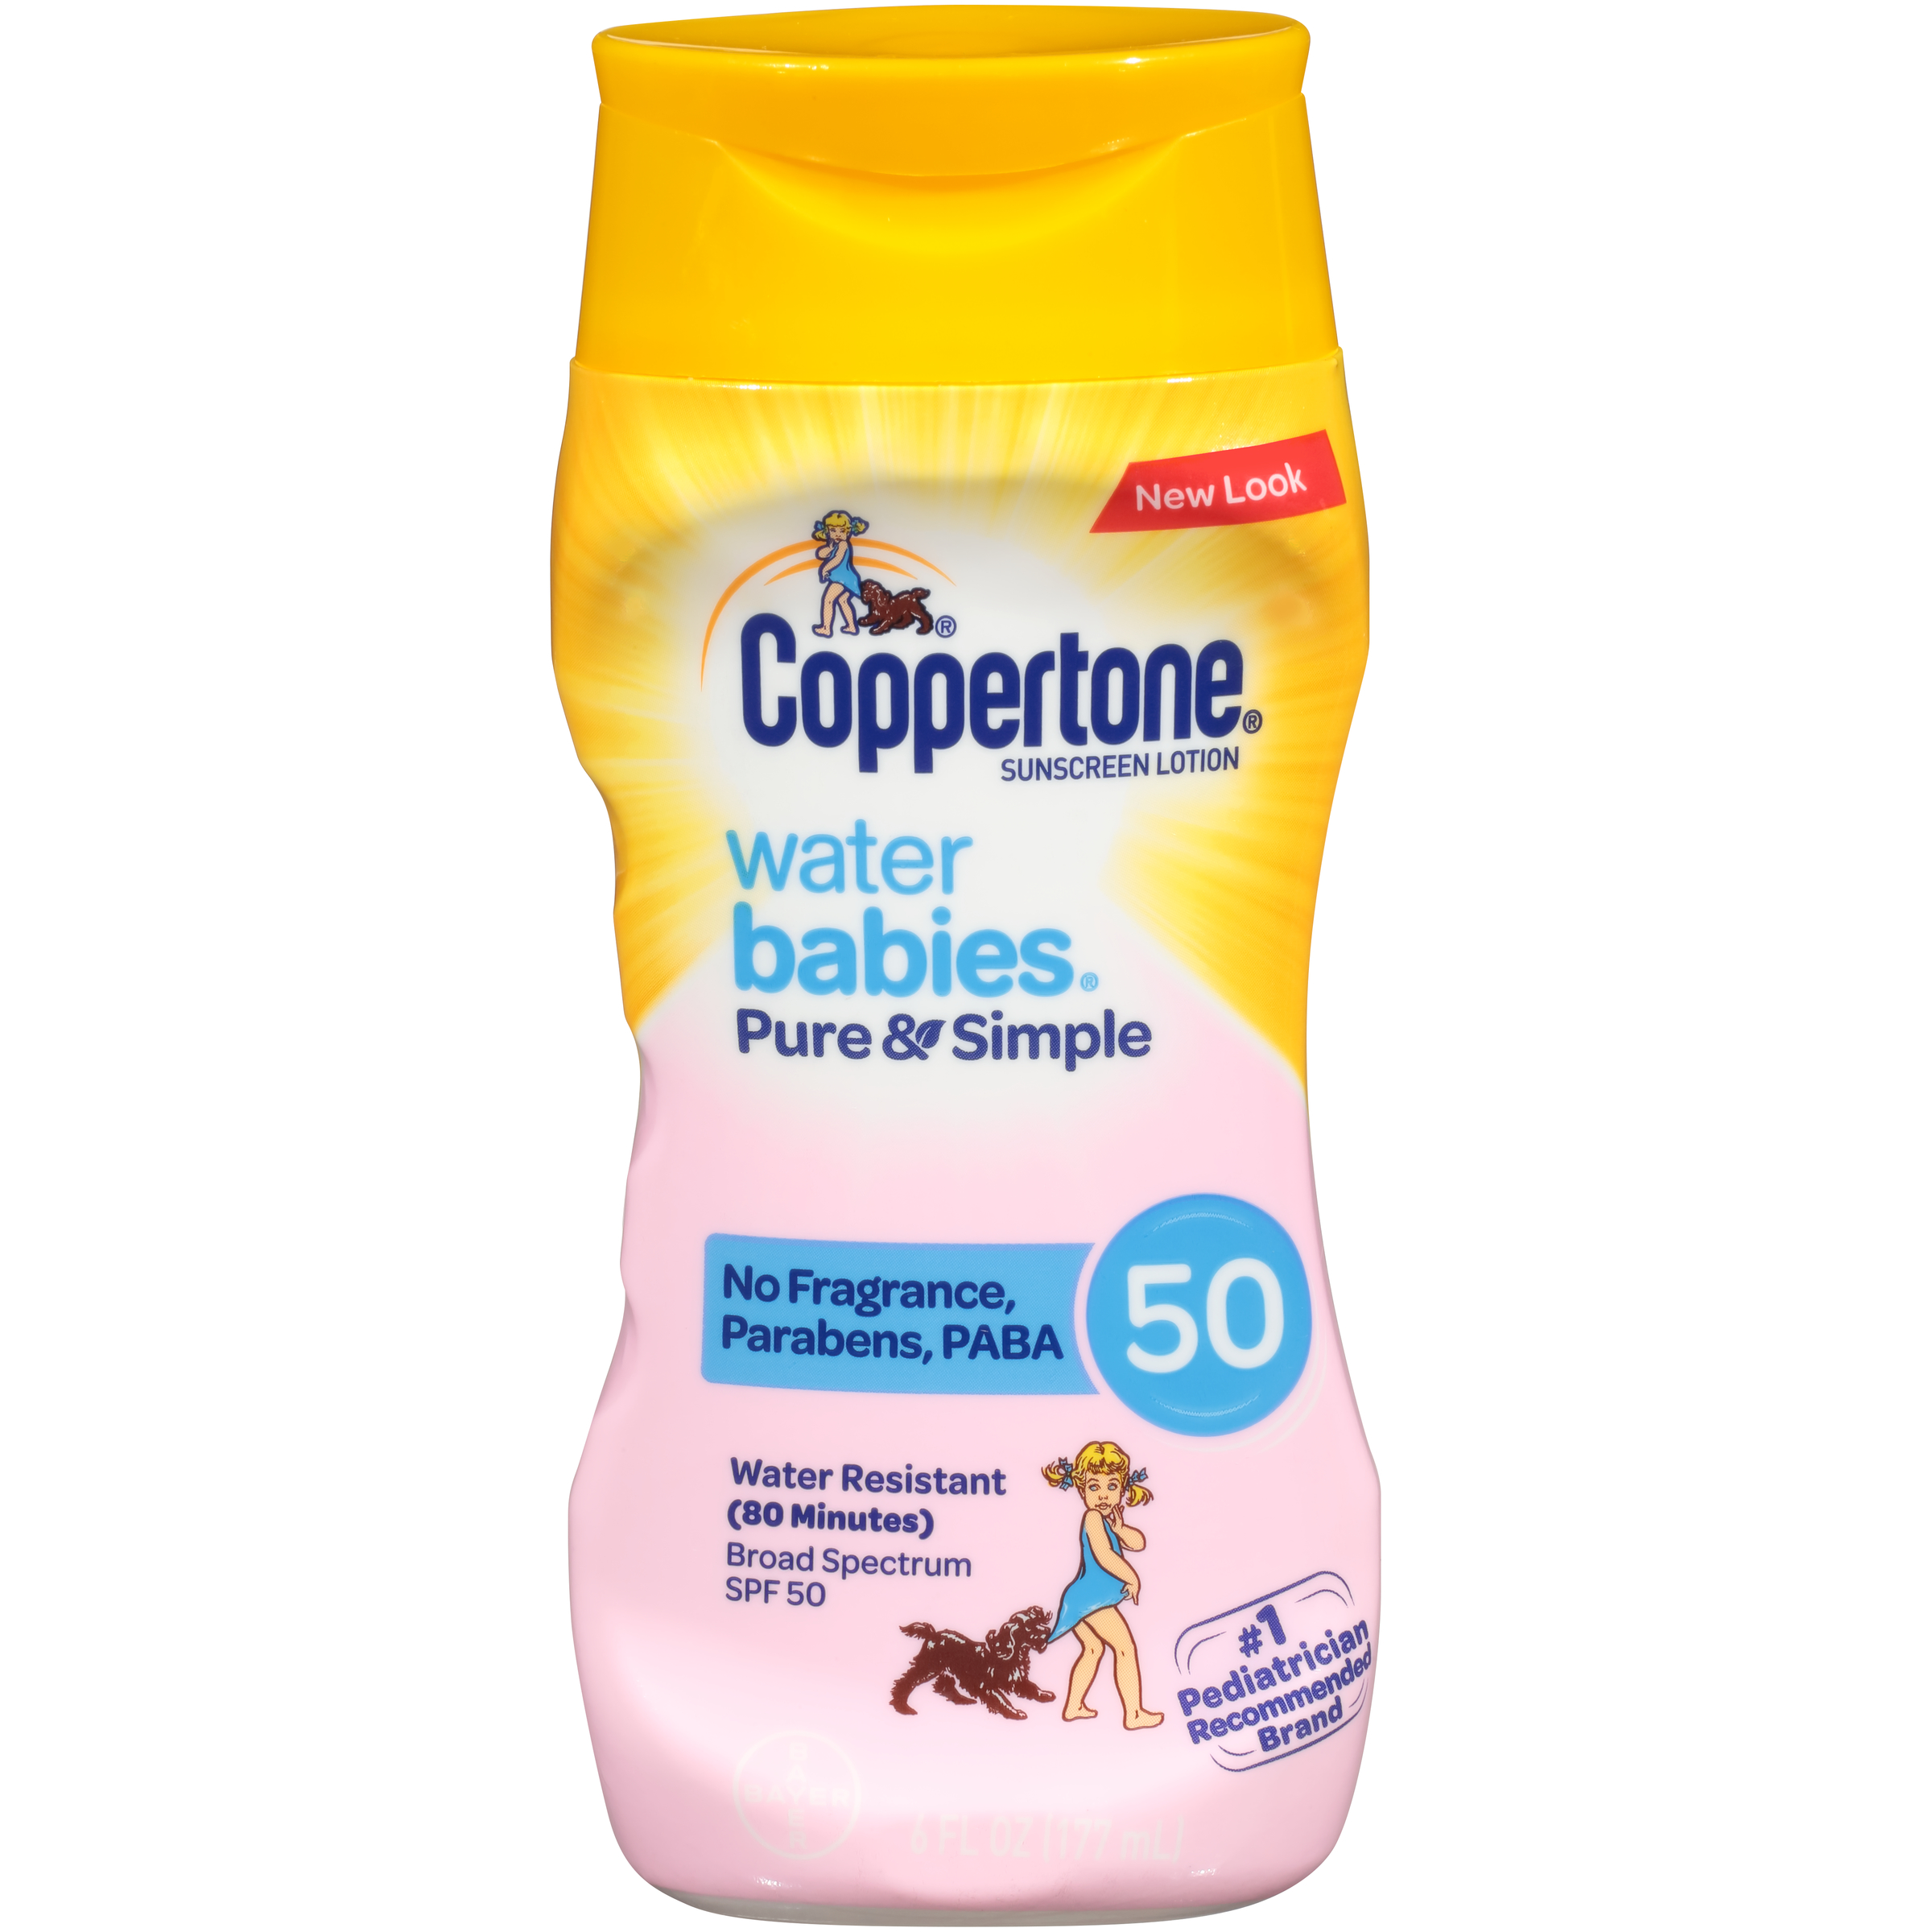 Coppertone WaterBABIES Pure & Simple Fragrence Free Sunscreen Lotion SPF 50, 6 Oz